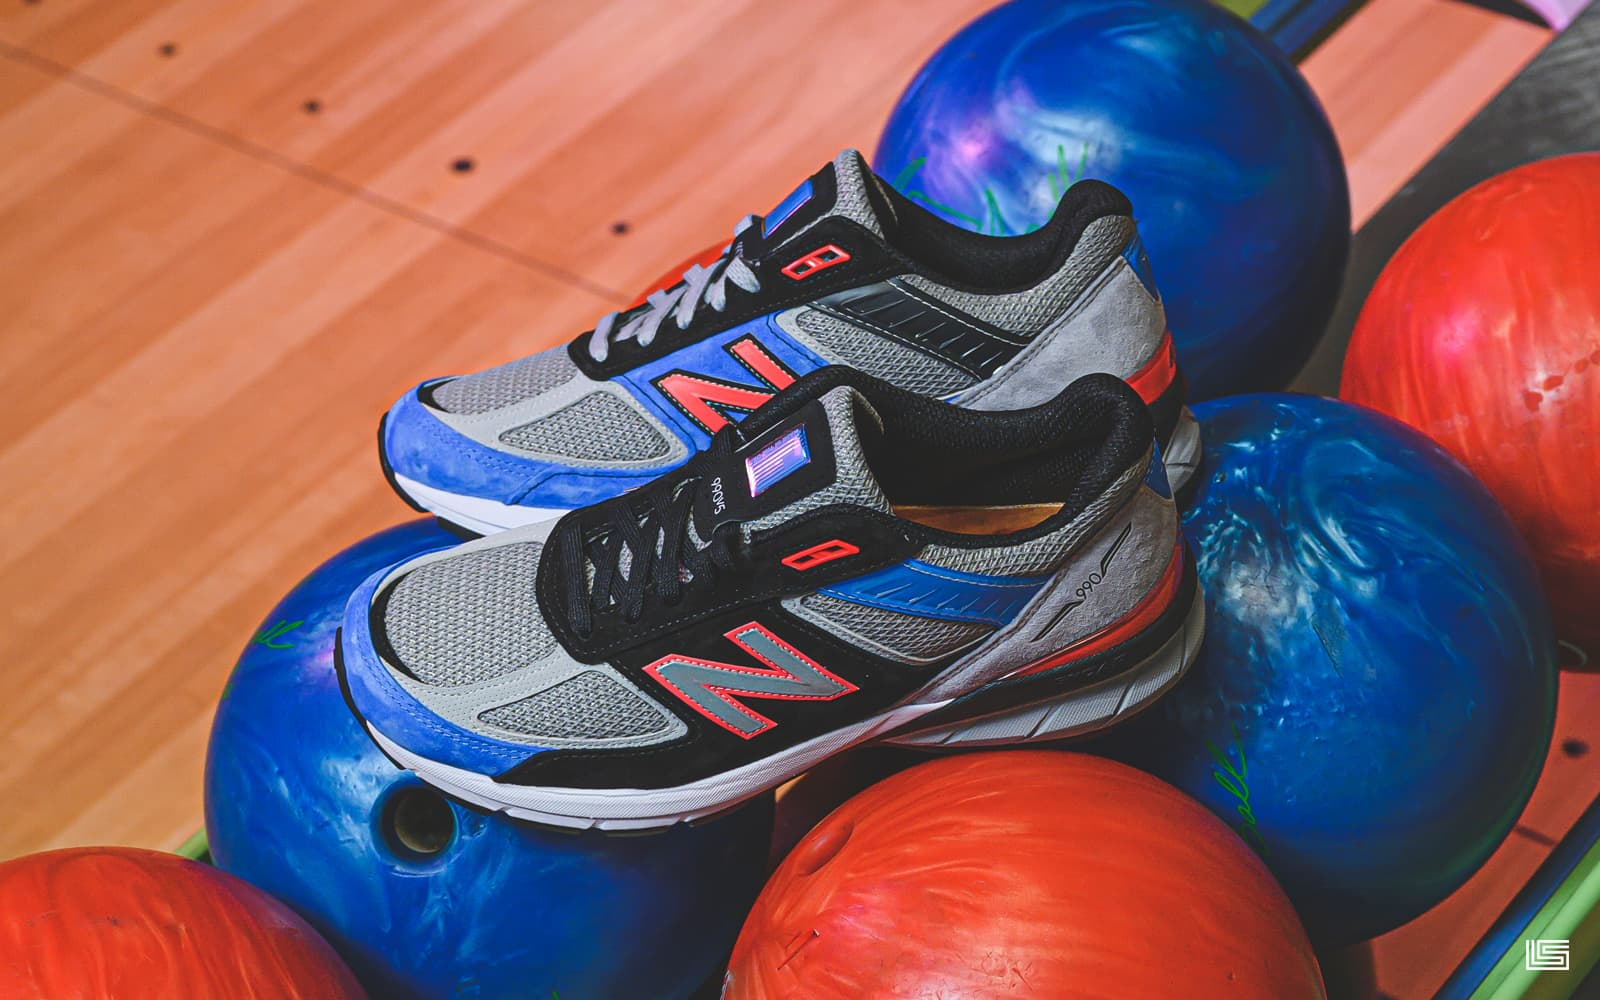 great discount sale discount for sale half off Introducing DTLR VILLA's Exclusive New Balance 990V5 'Fast ...